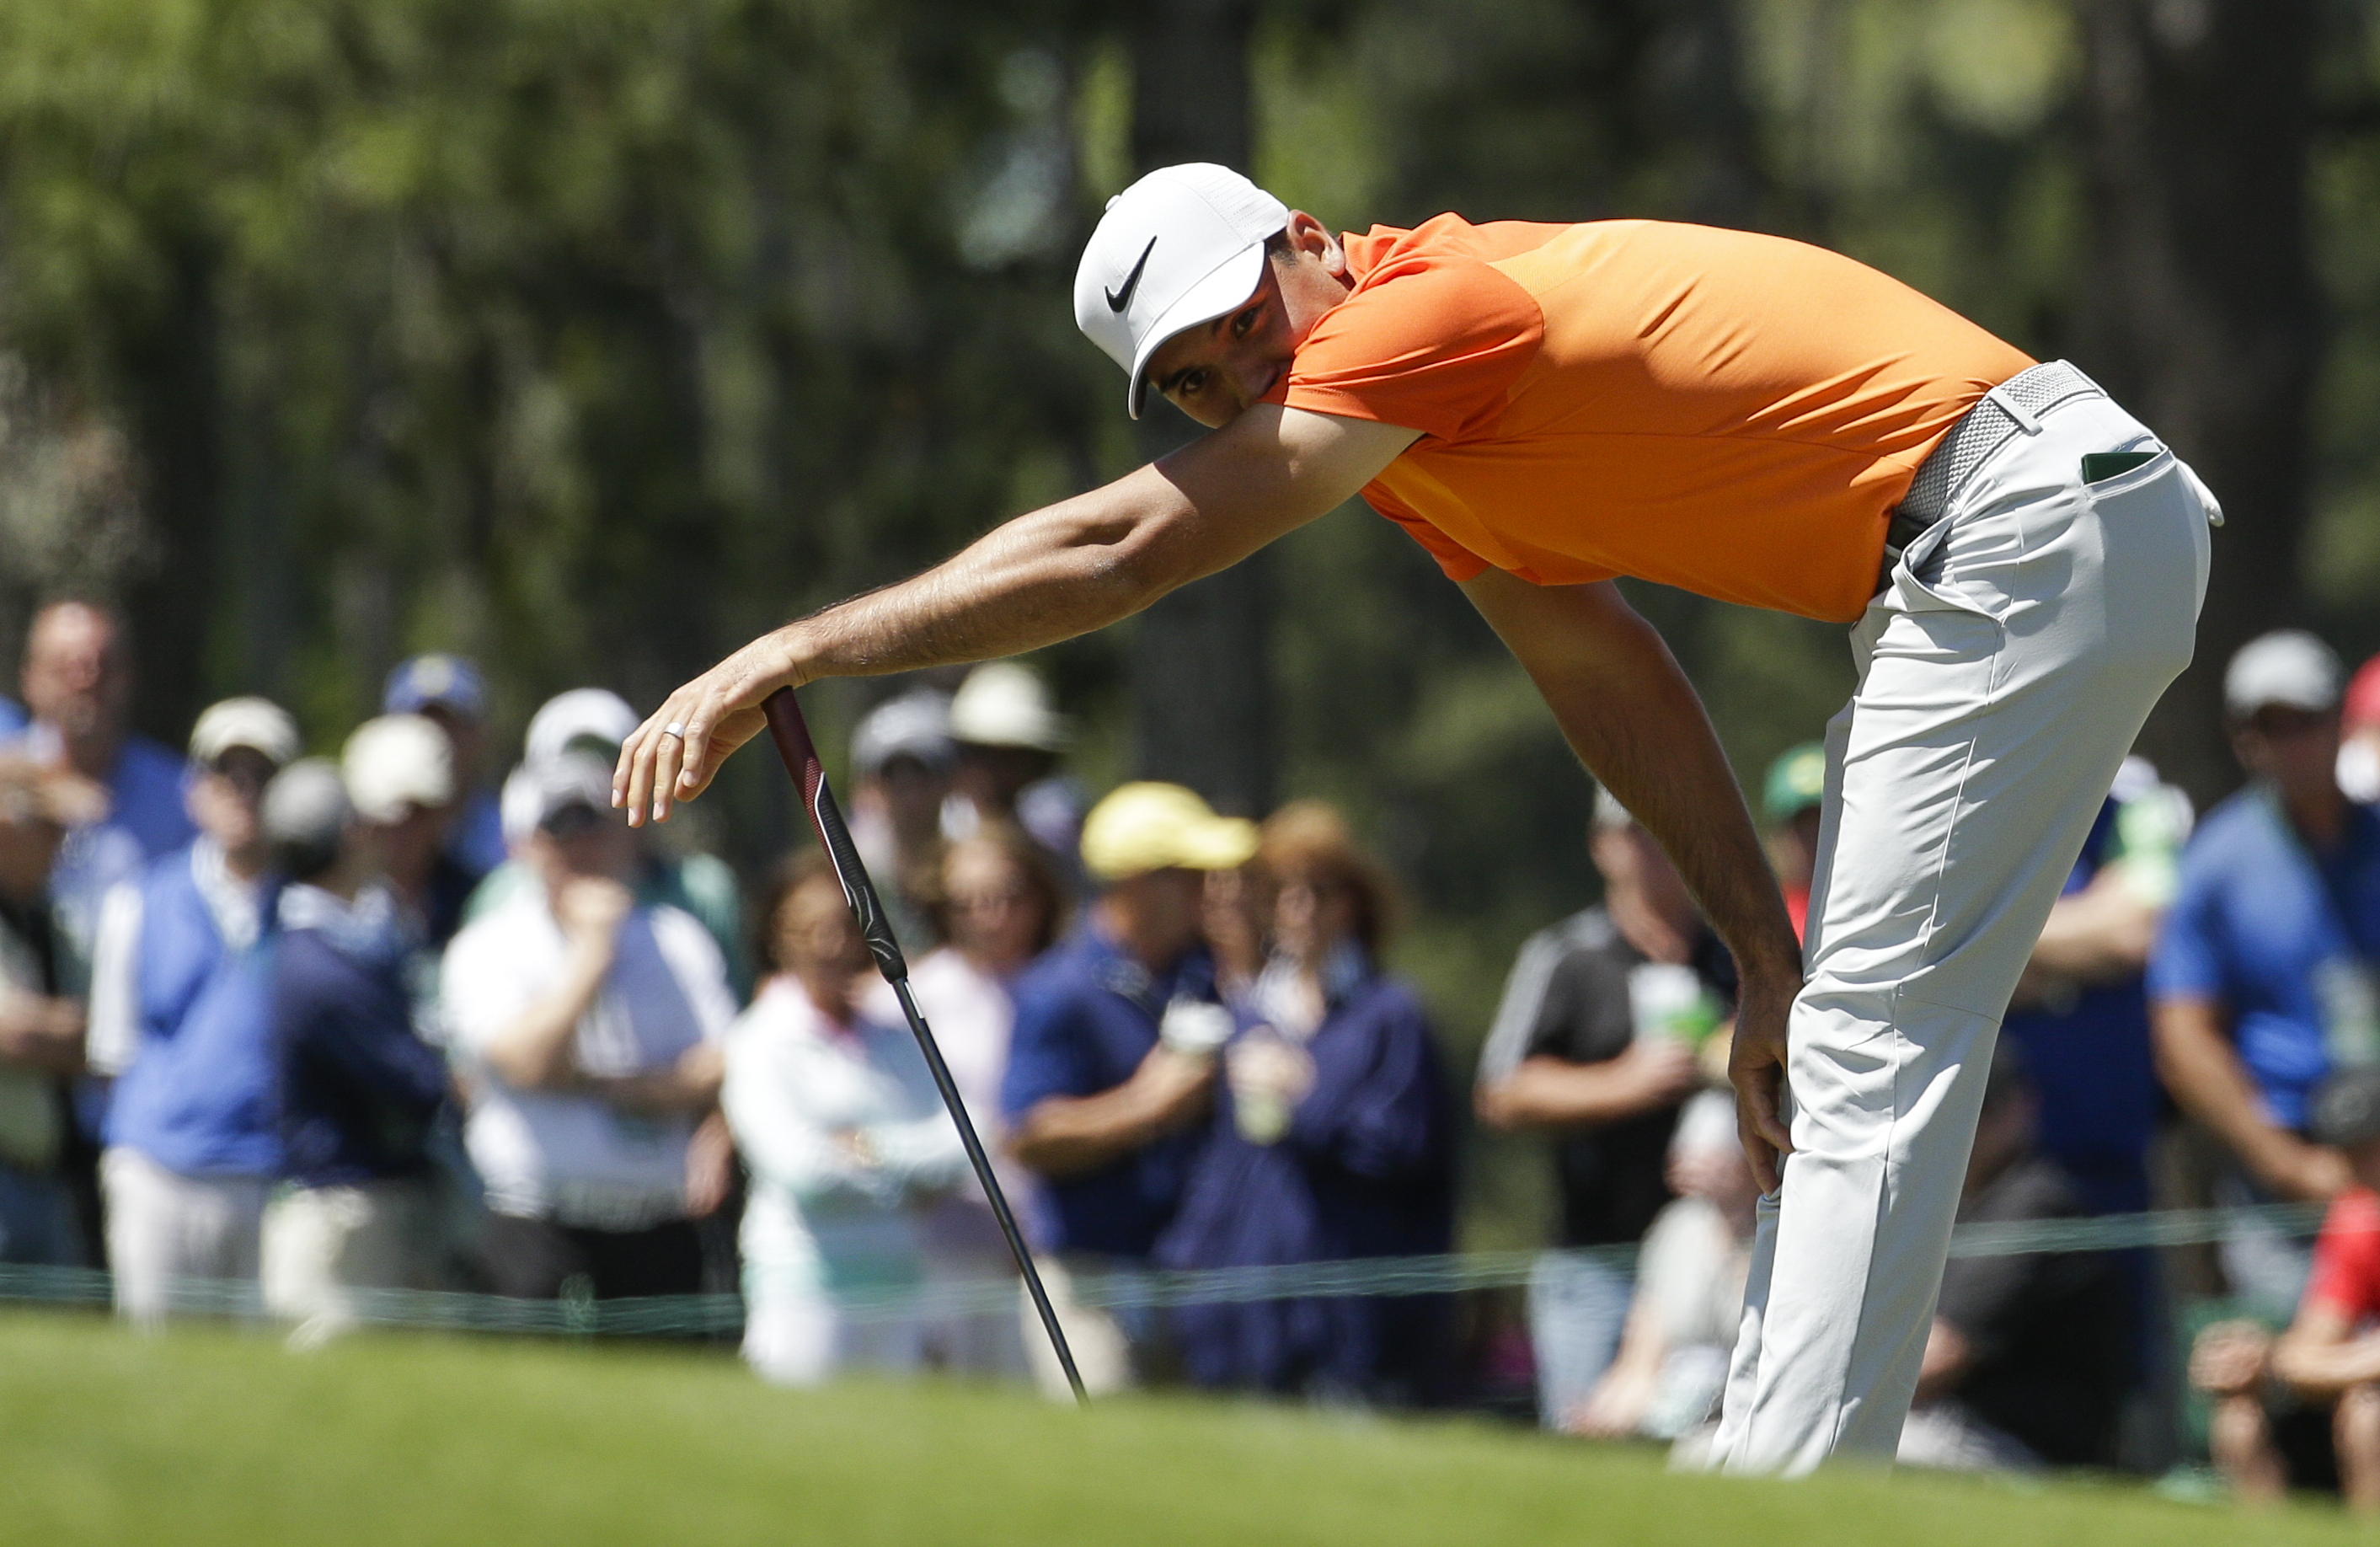 Jason Day of Australia, reacts after missing a putt on the 17th hole during the third round of the Masters golf tournament Saturday, April 8, 2017, in Augusta, Ga. (AP Photo/Charlie Riedel)